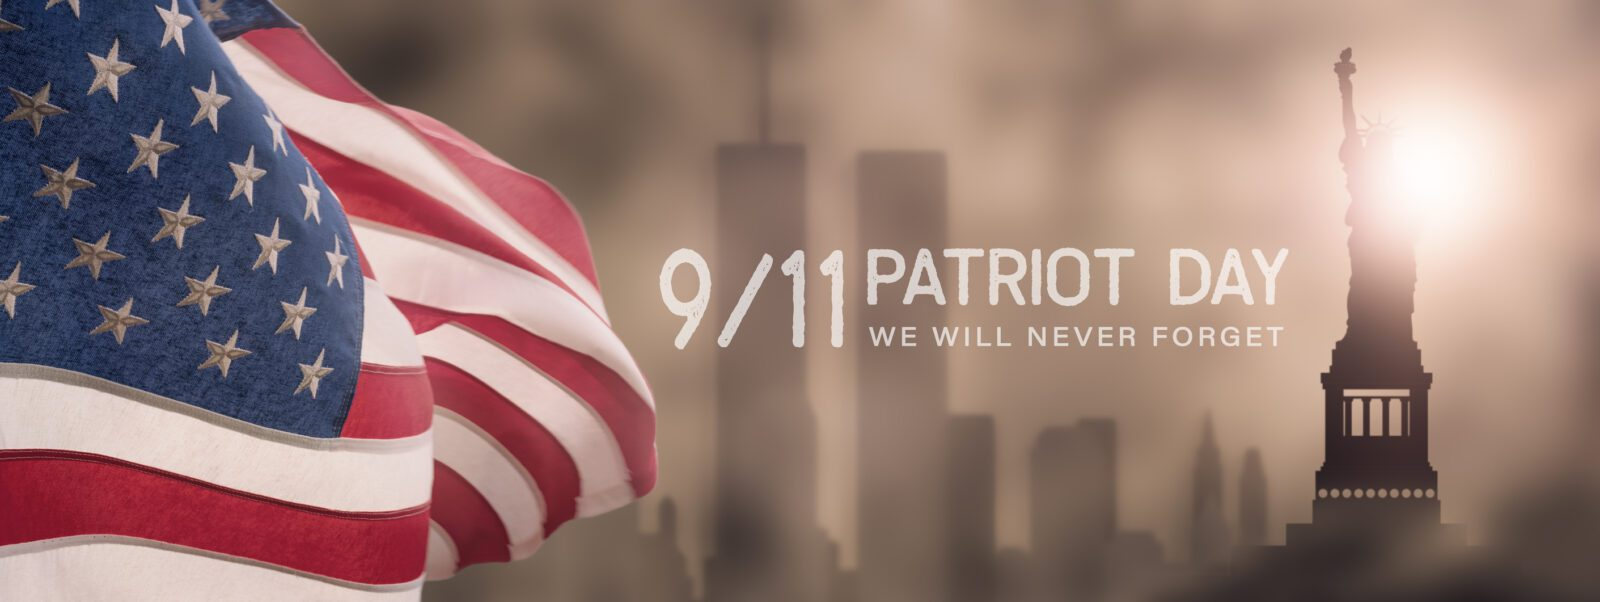 9-11 Patriot Day